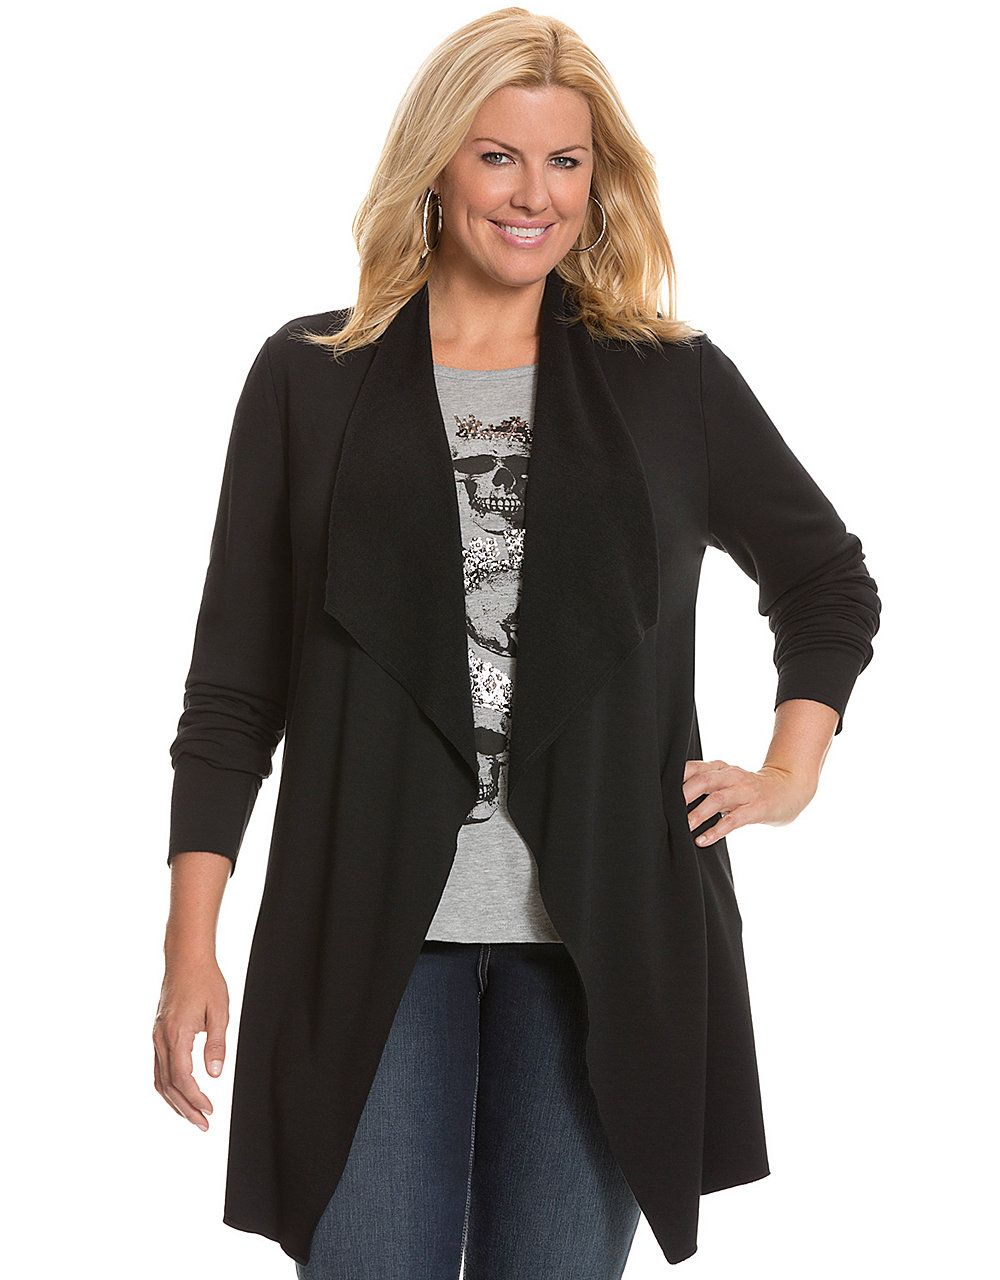 Cozy draped overpiece by Lane Bryant | Lane Bryant